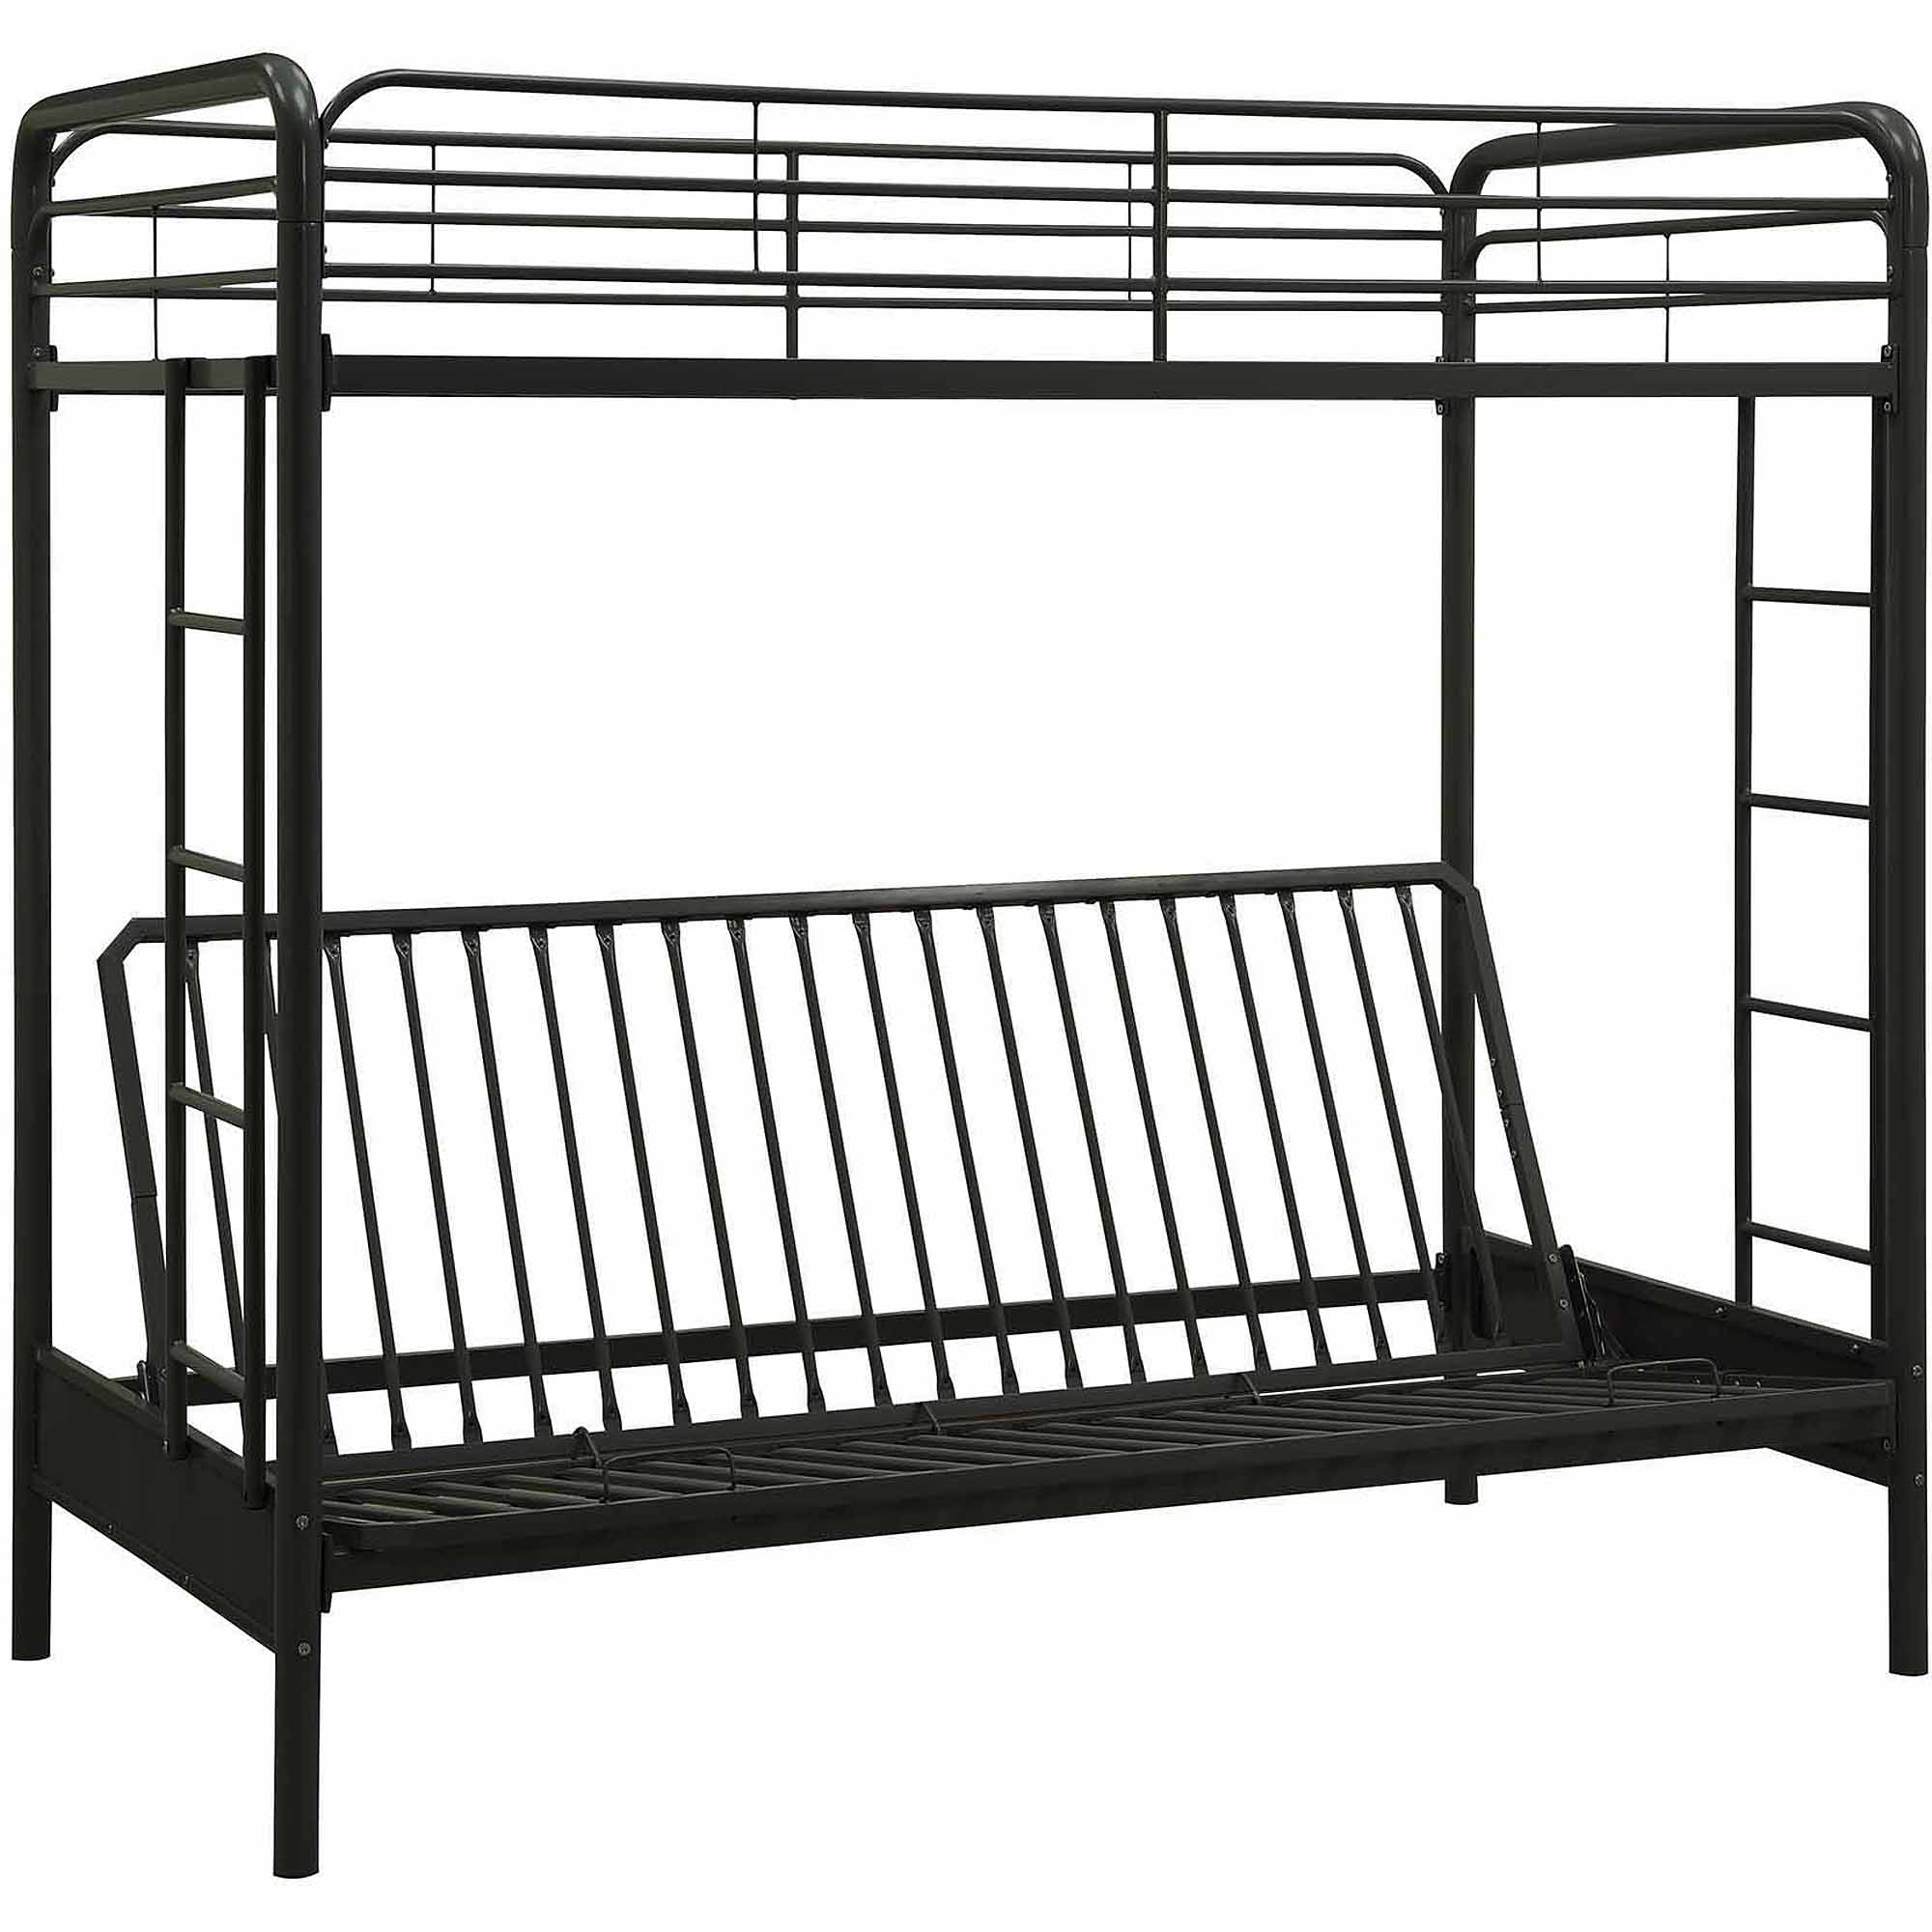 Black Futon Bunk Bed Instructions